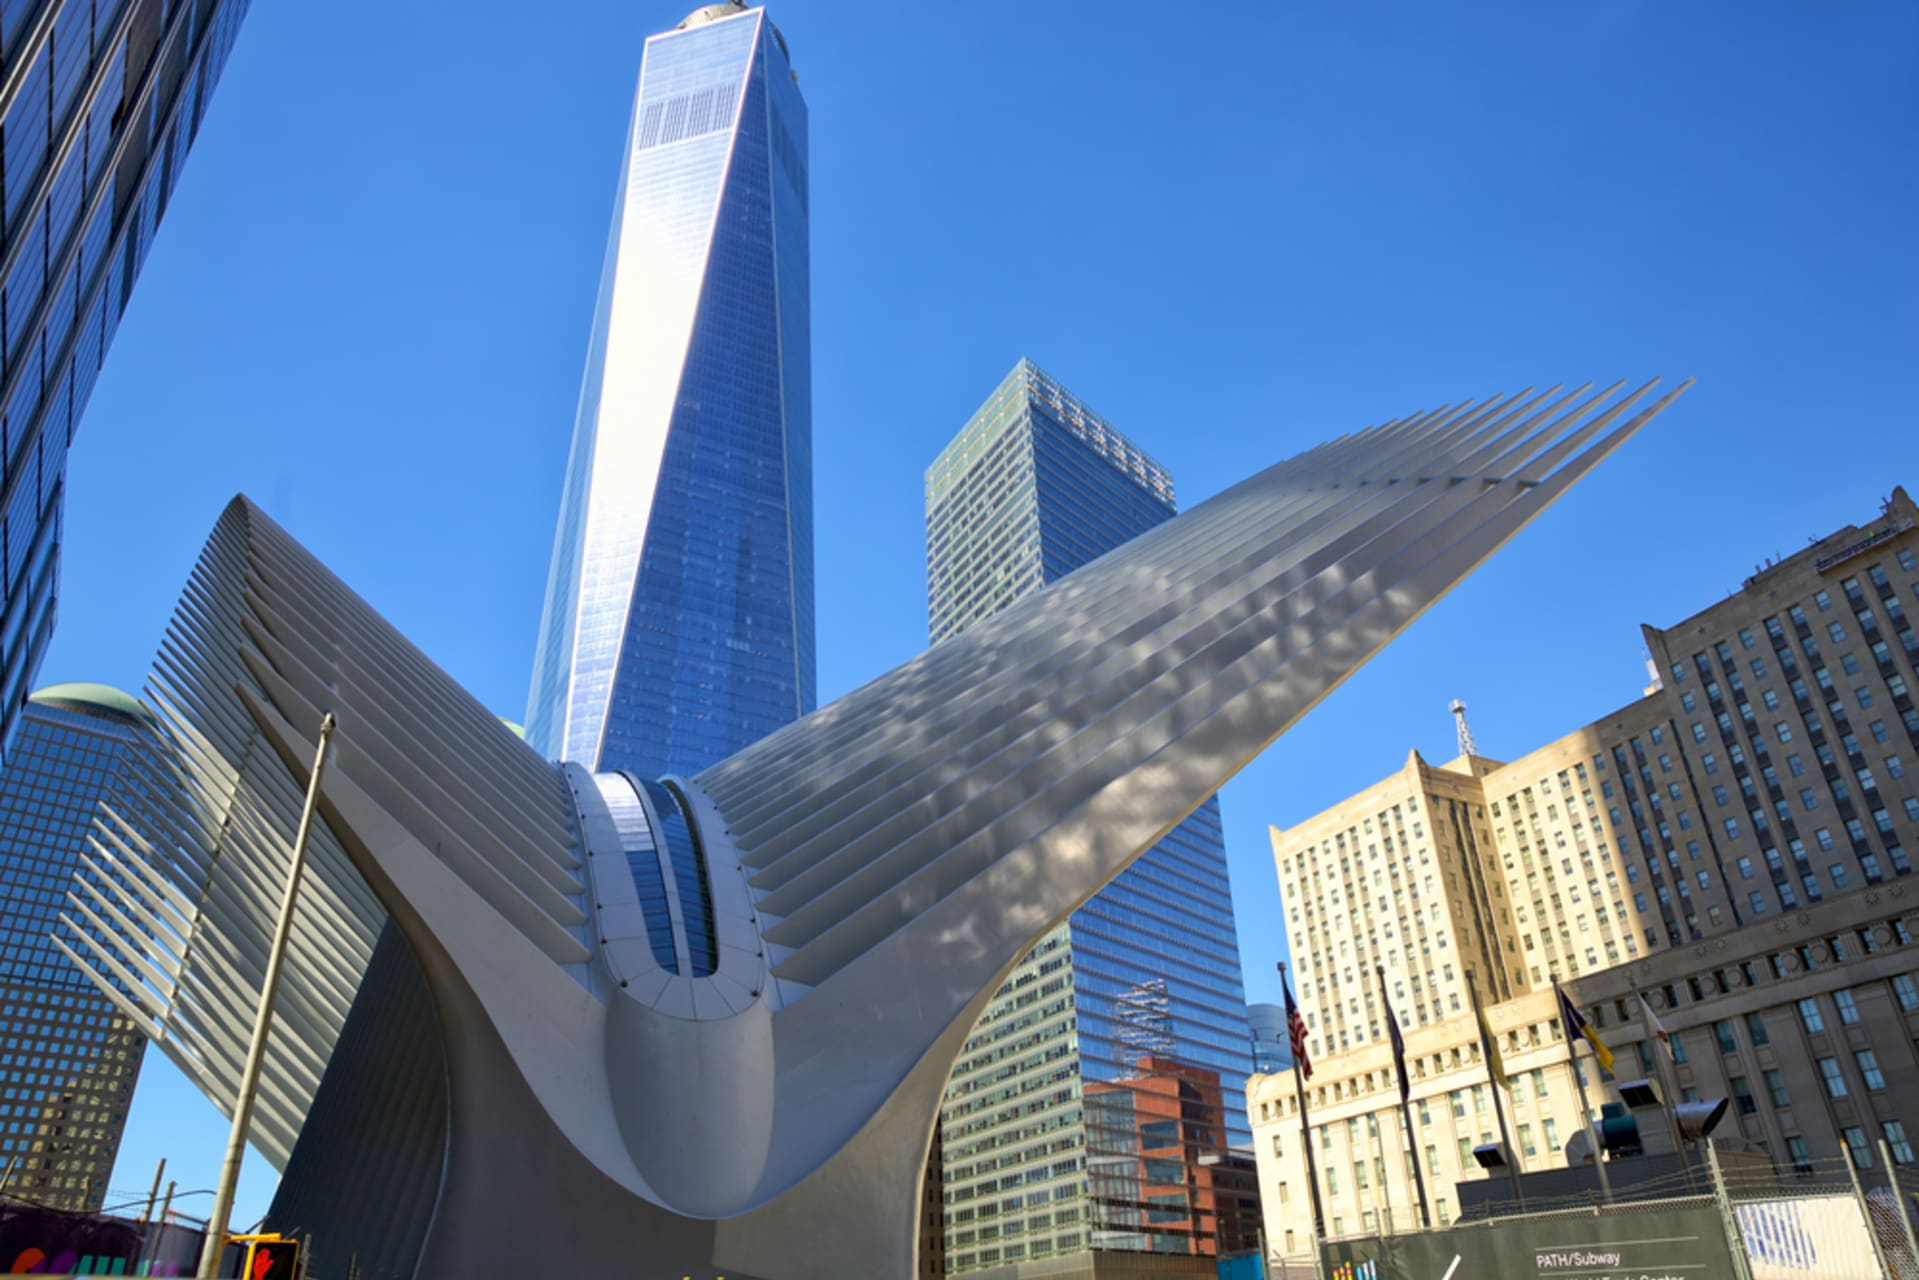 New York - 9/11 Memorial and Financial District